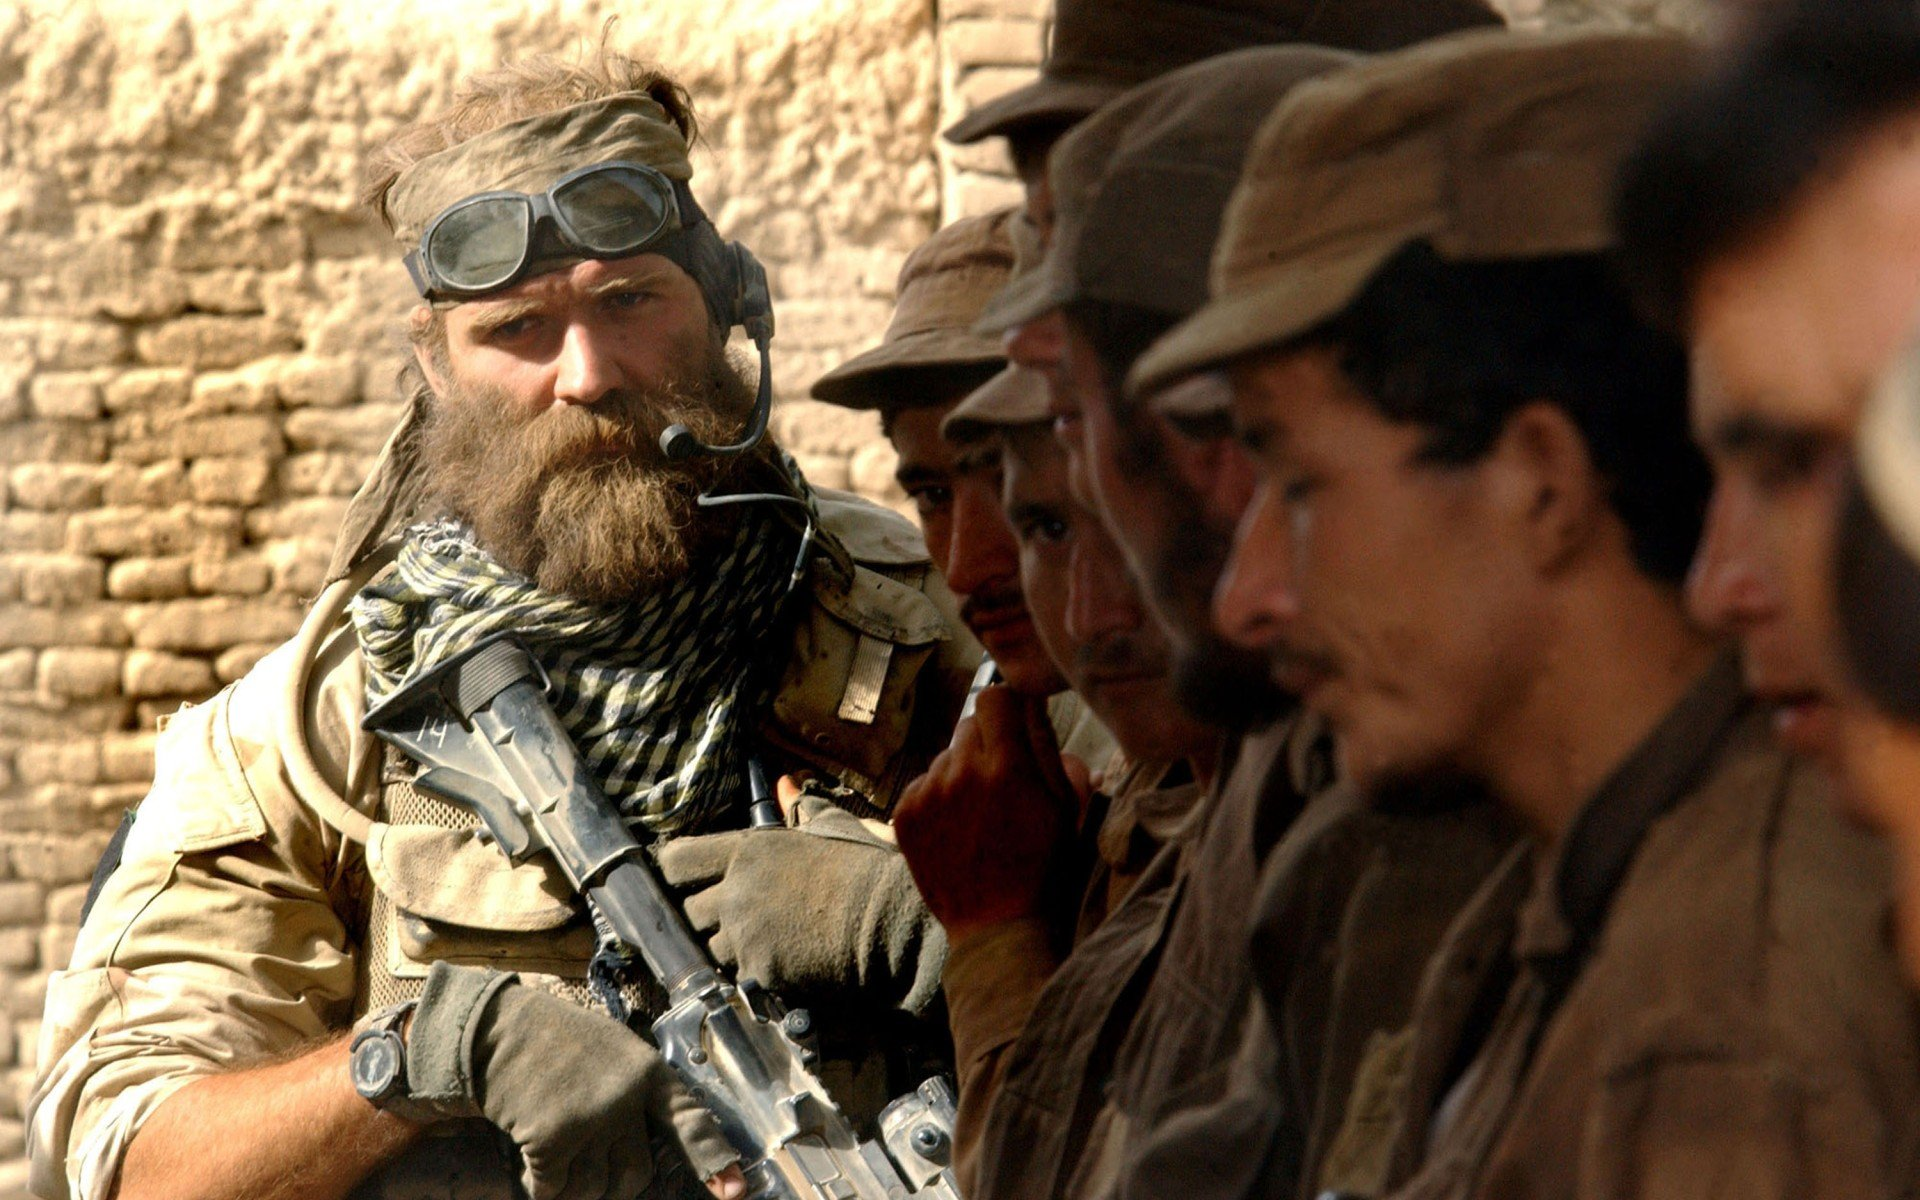 beards in an army